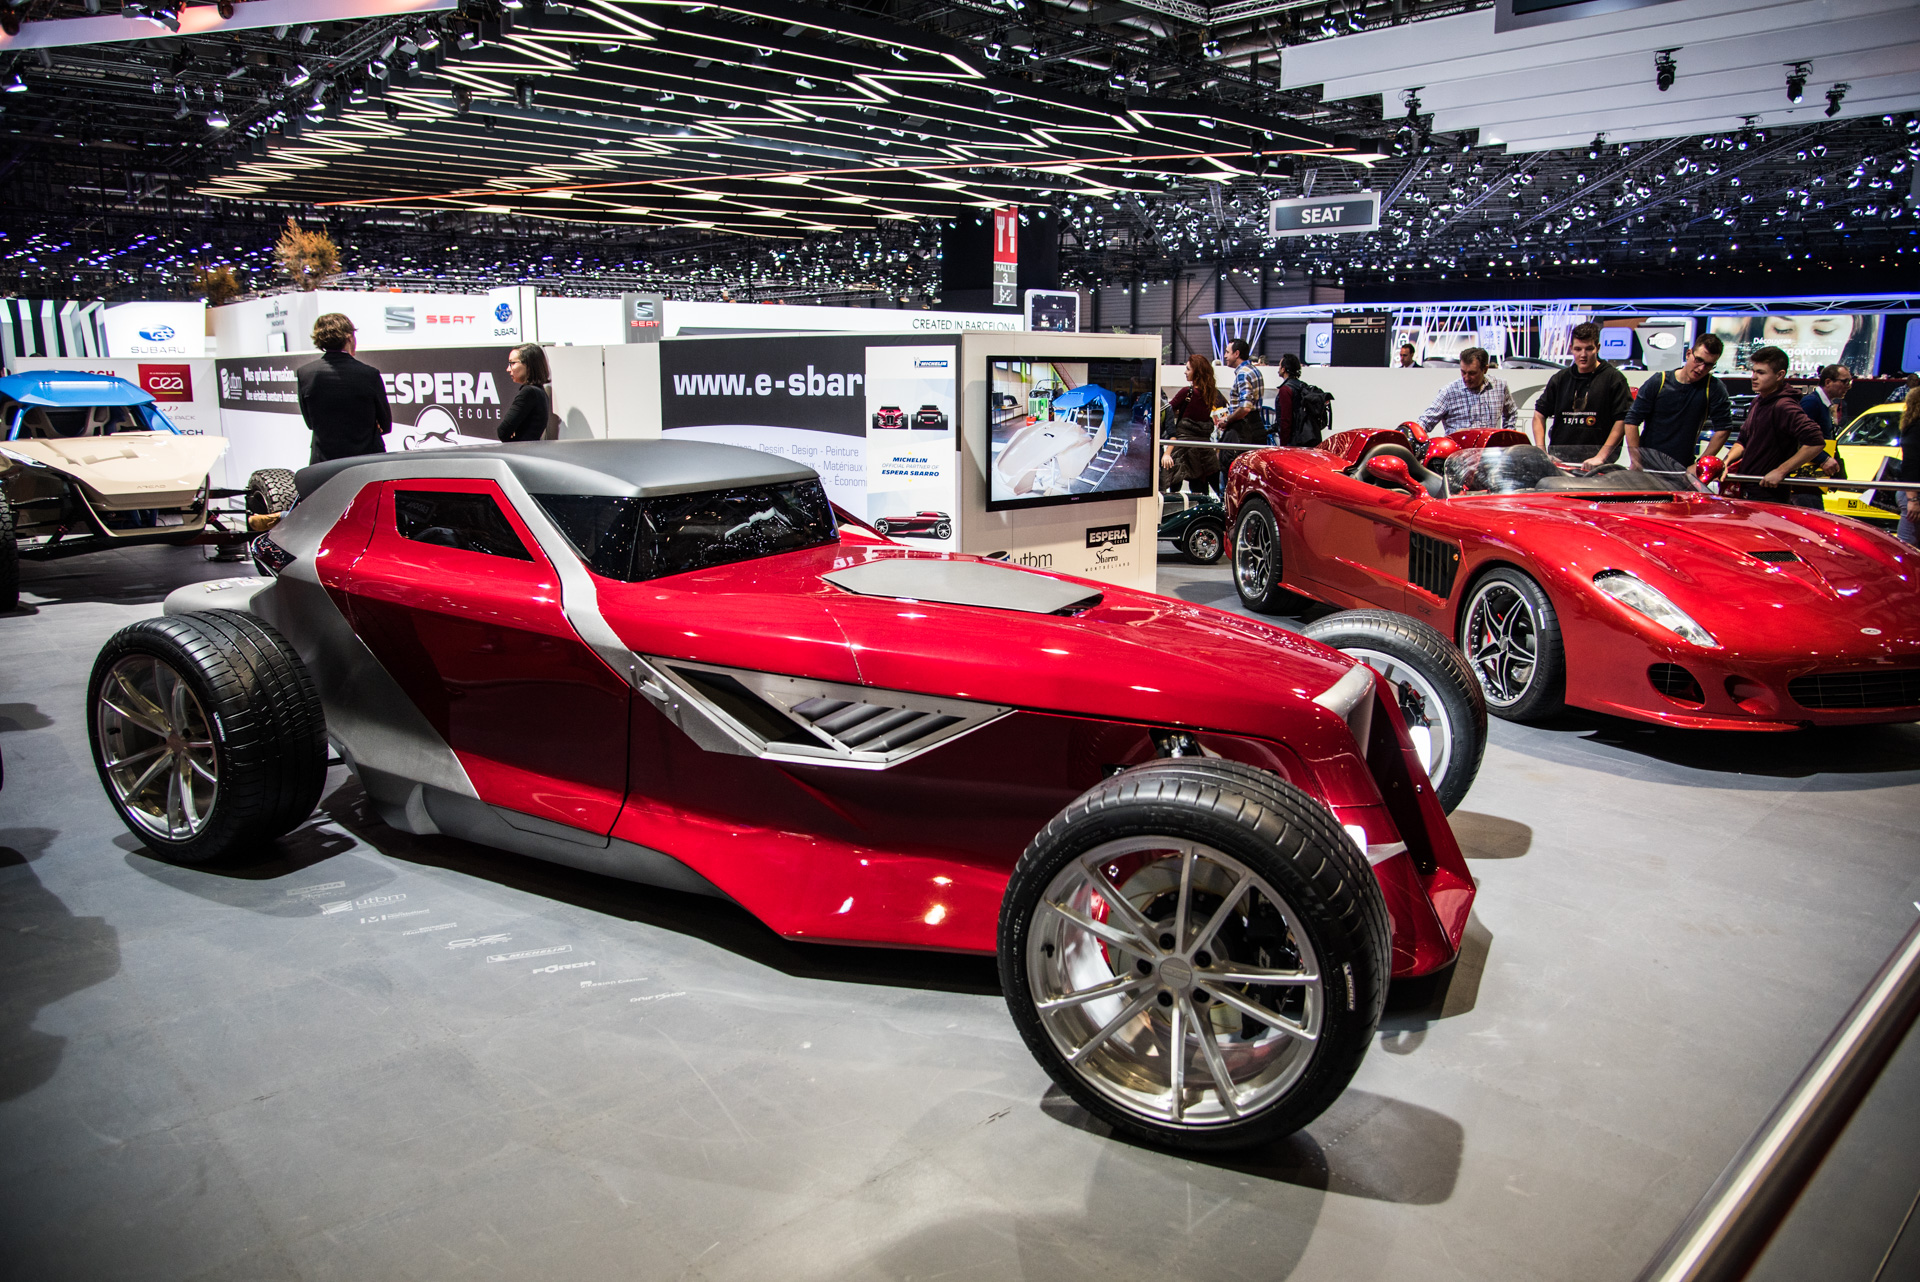 geneva-international-motor-show-igor-sinitsin-106